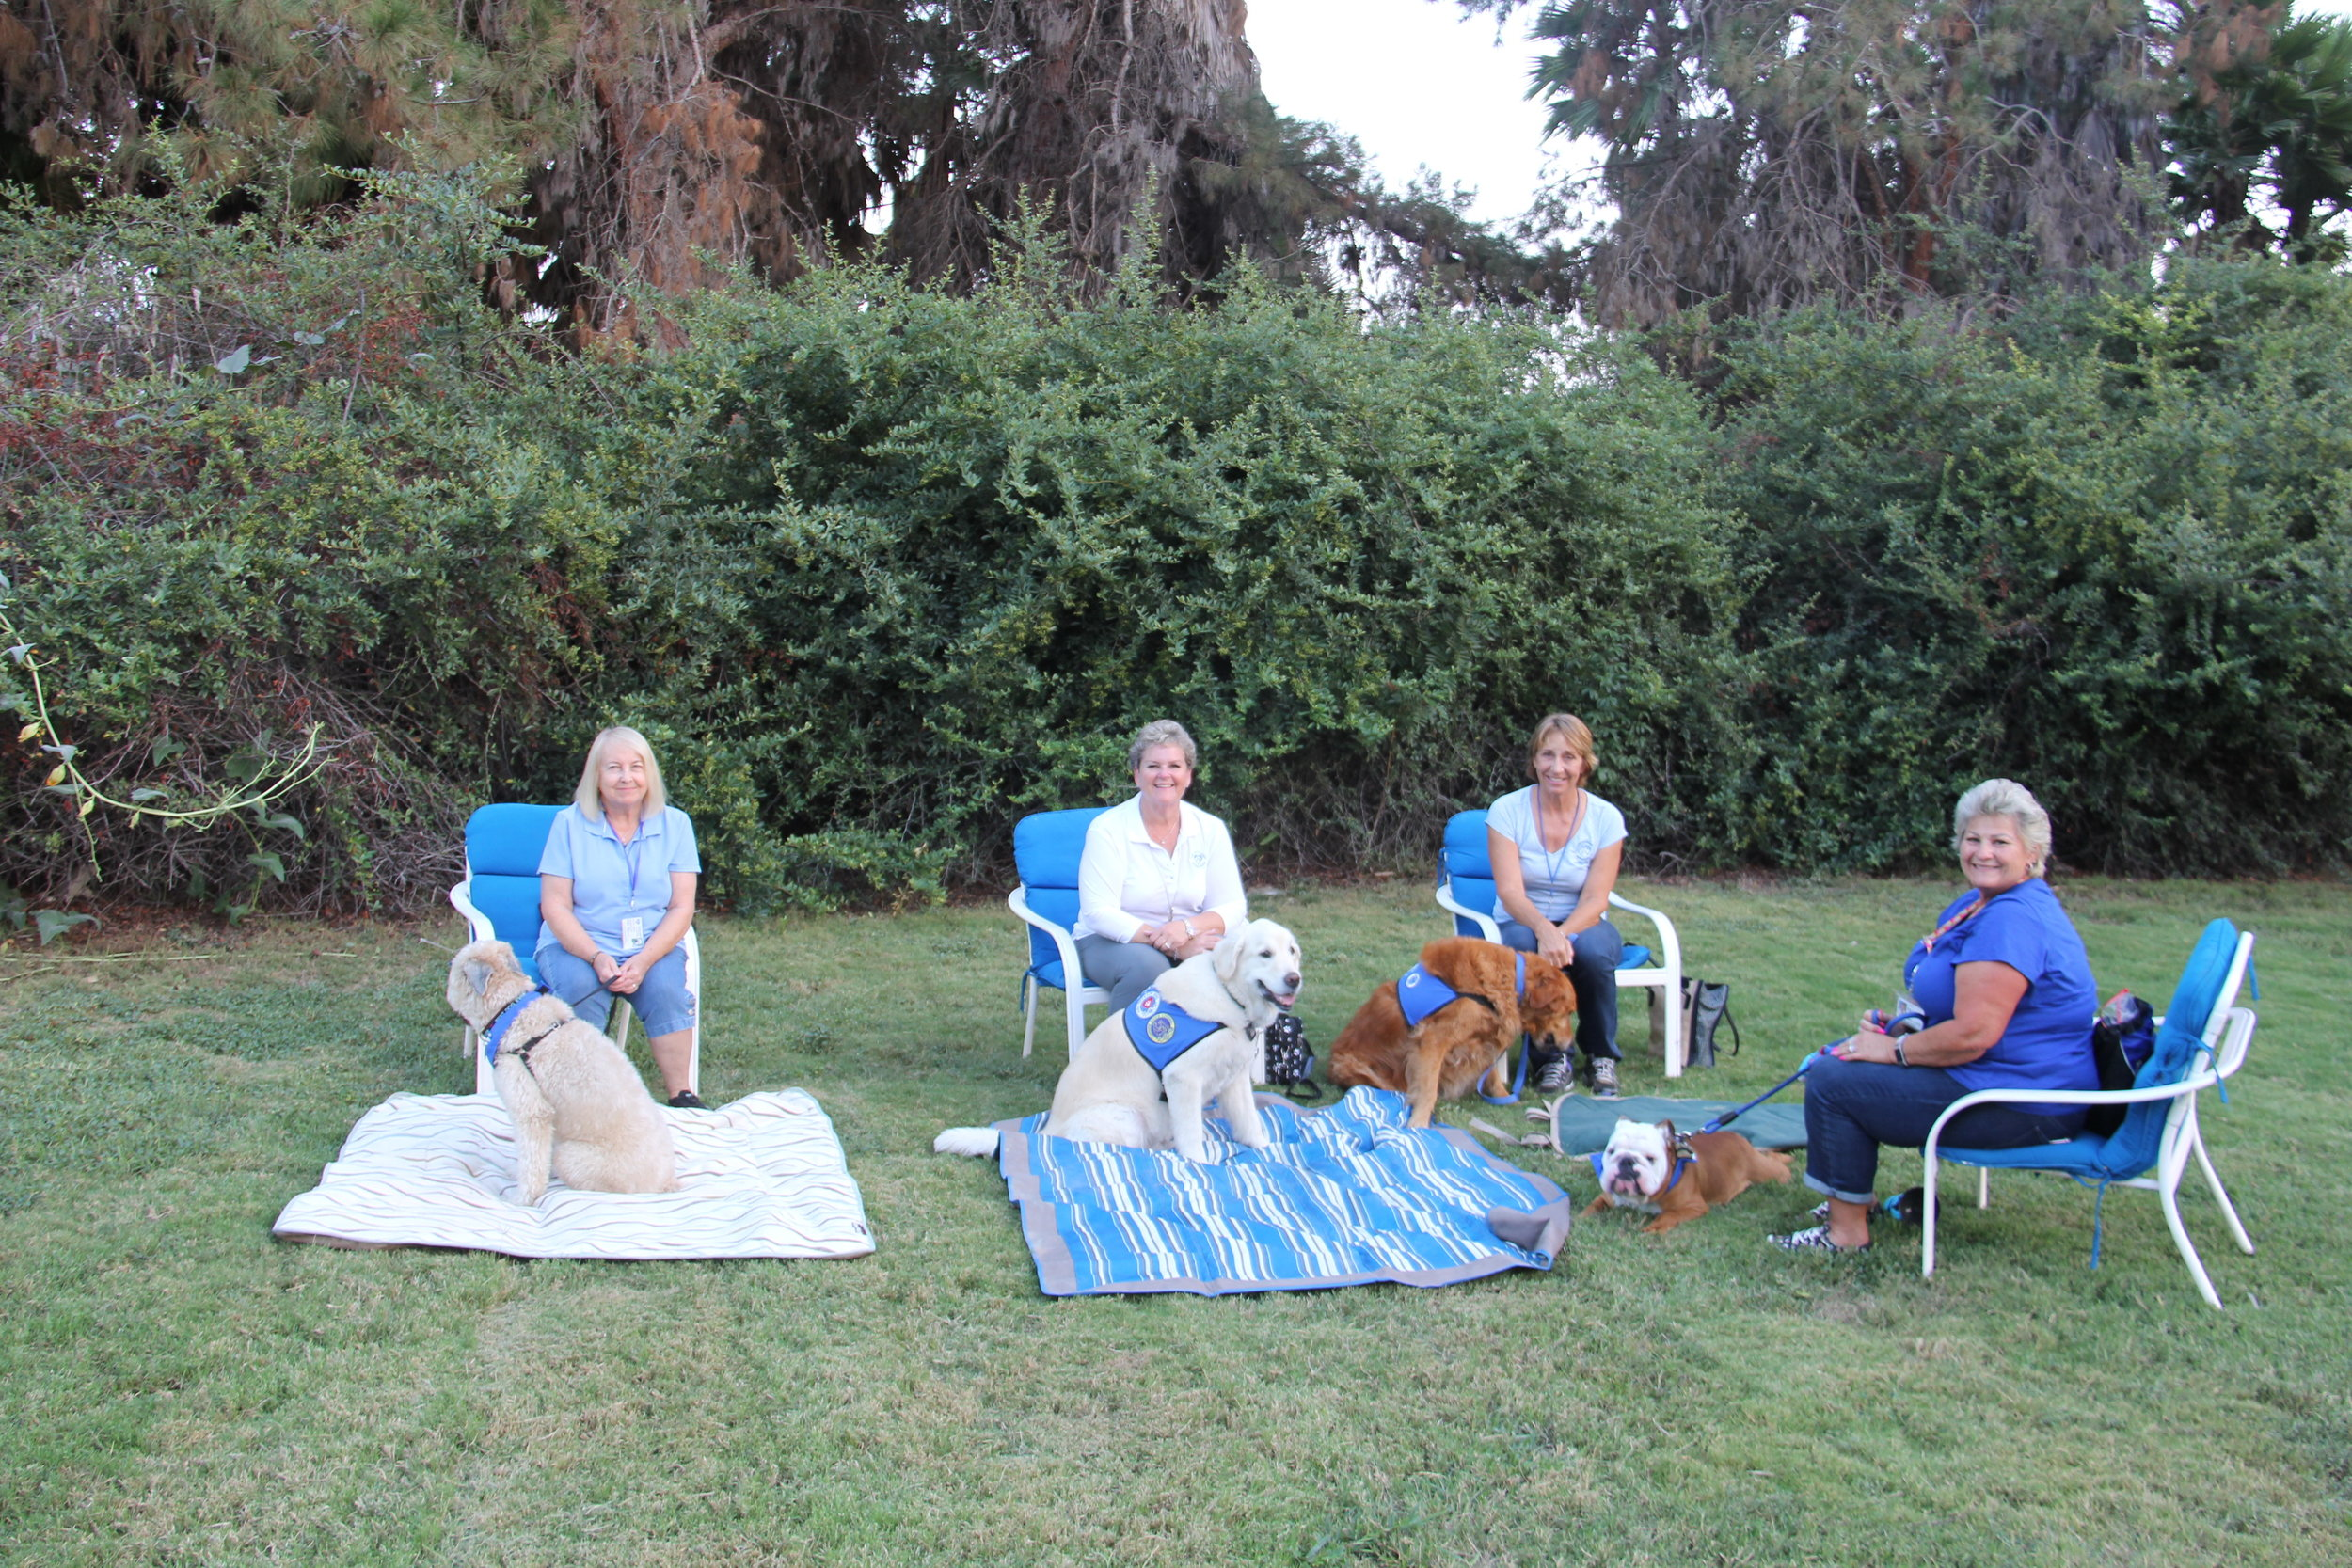 Love on a Leash Central San Diego Chapter came back to welcome rape survivors to Sunlight Retreats and put survivors at ease